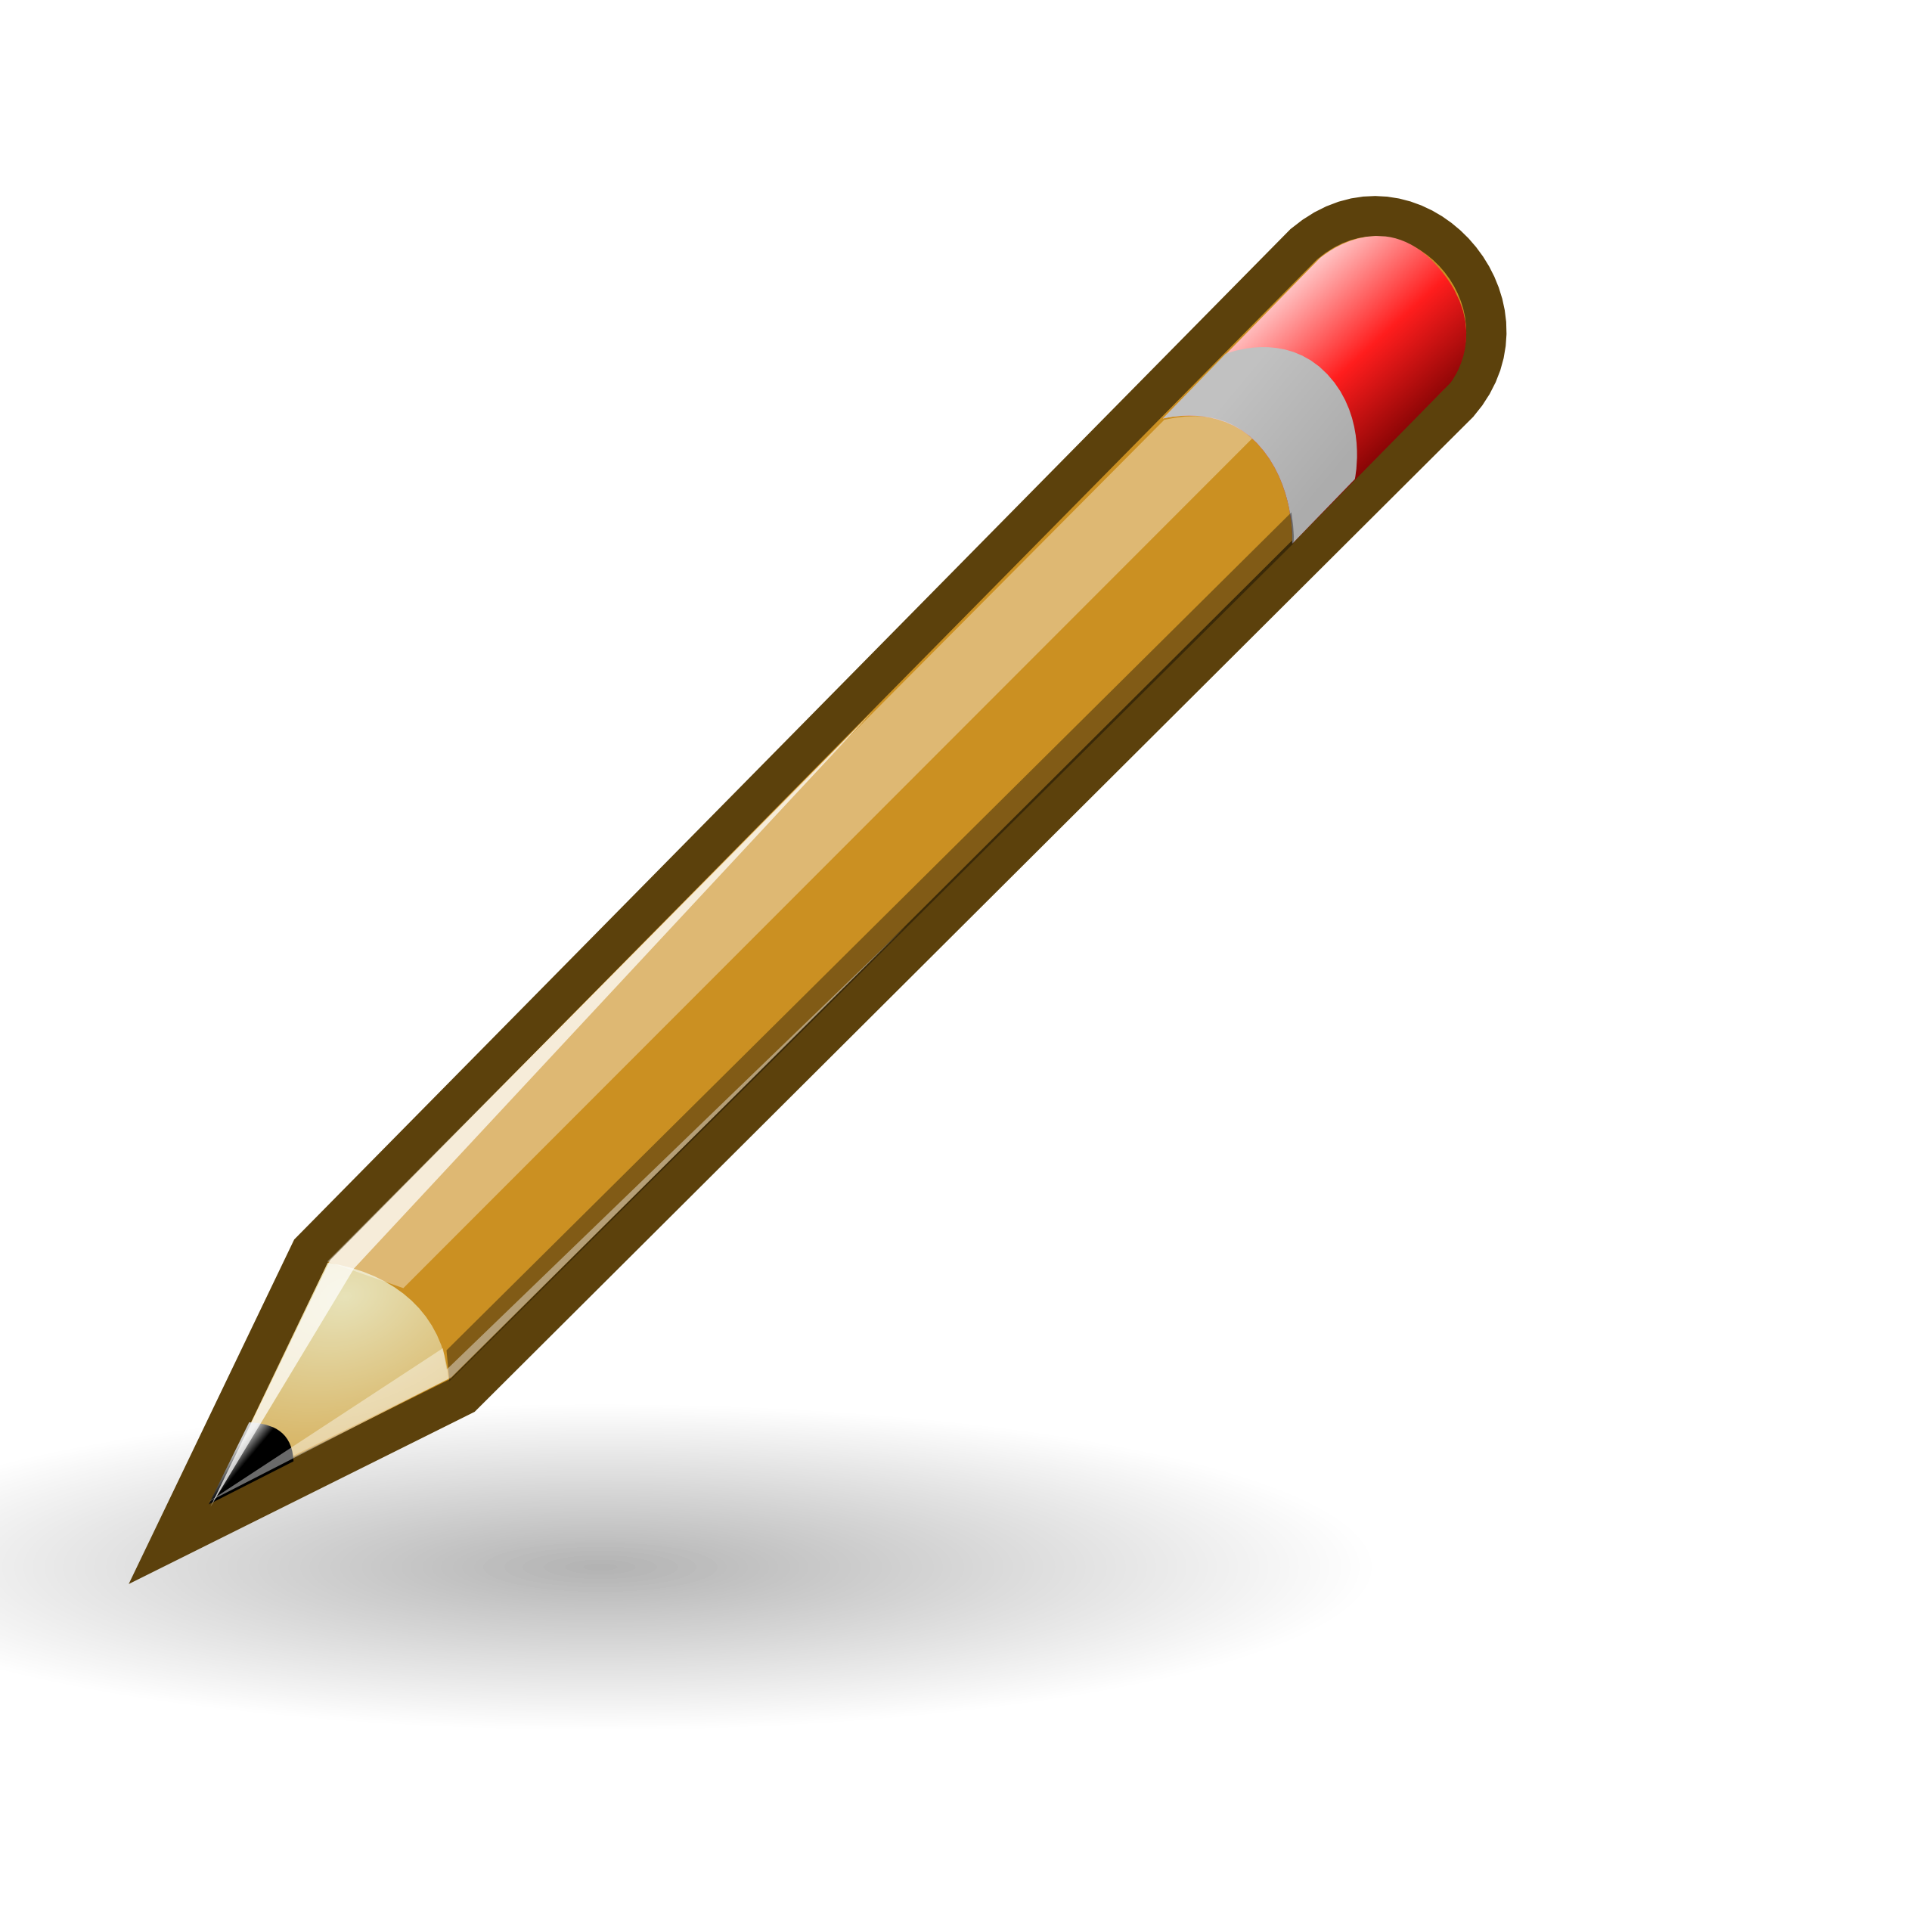 Pencil tip clipart.